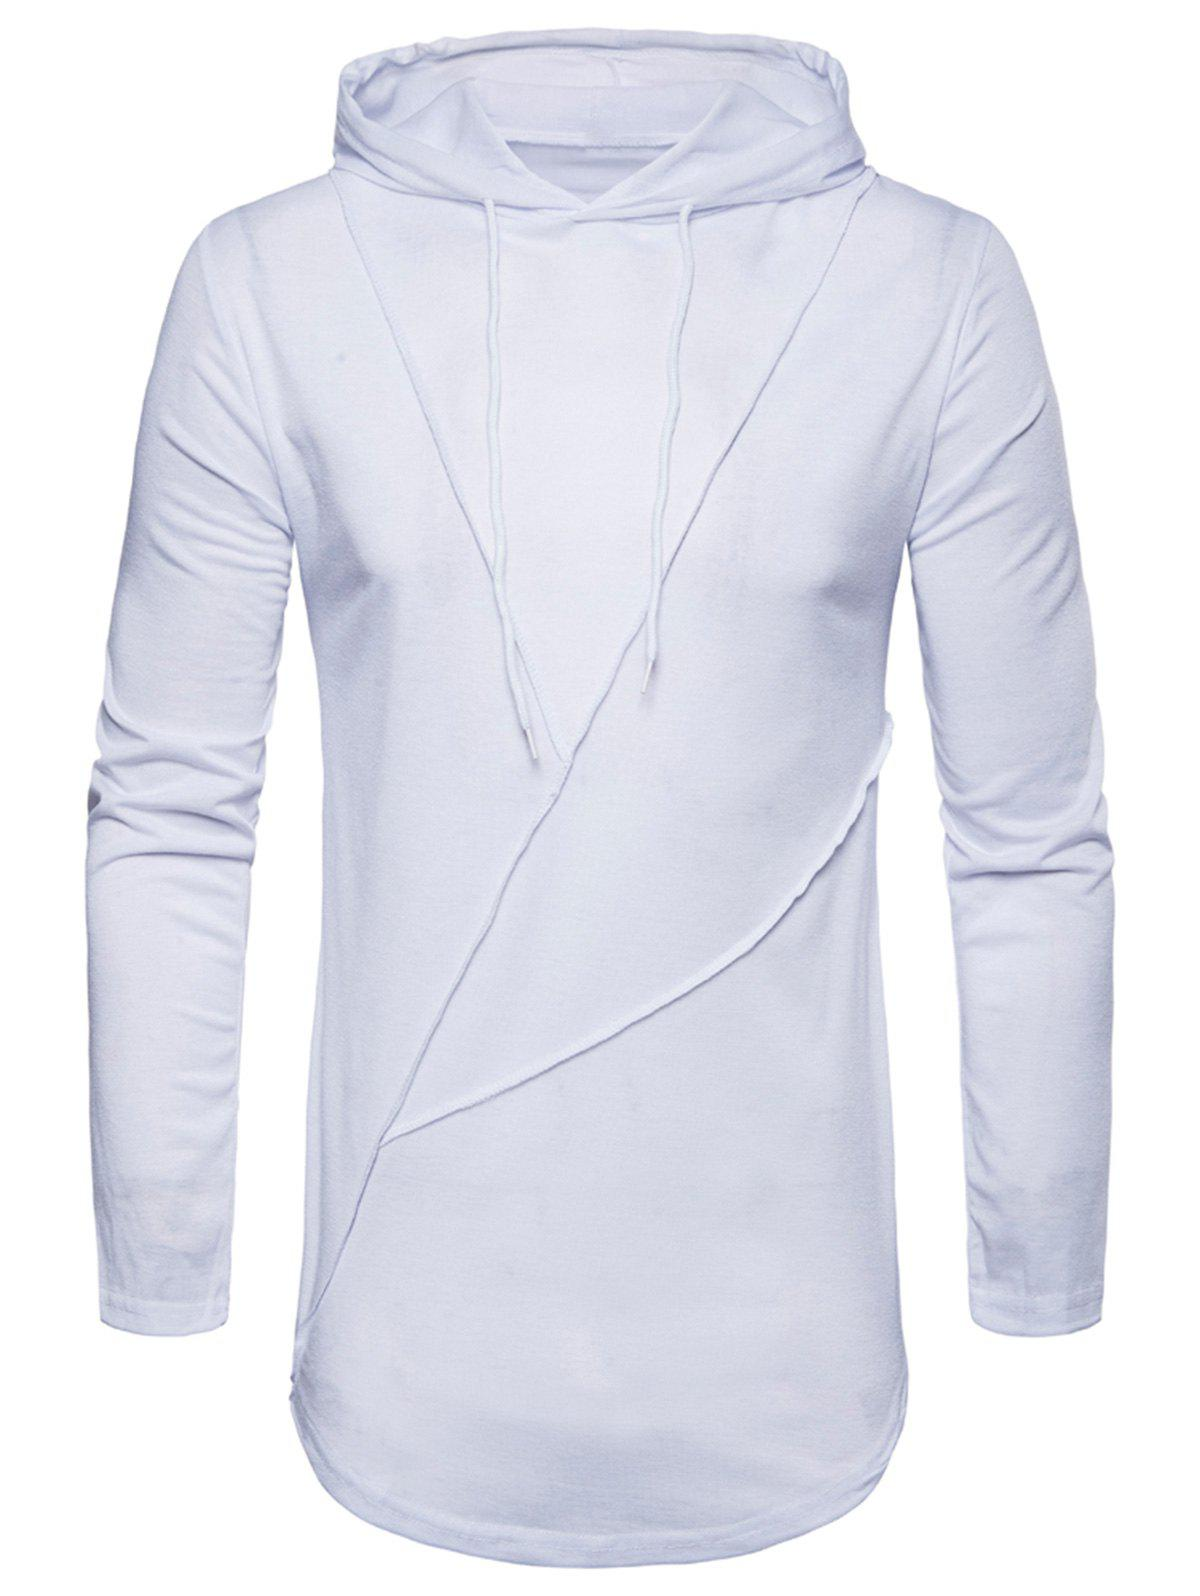 Zip Hem Solid Color Long Sleeve Hooded T-shirt - WHITE L